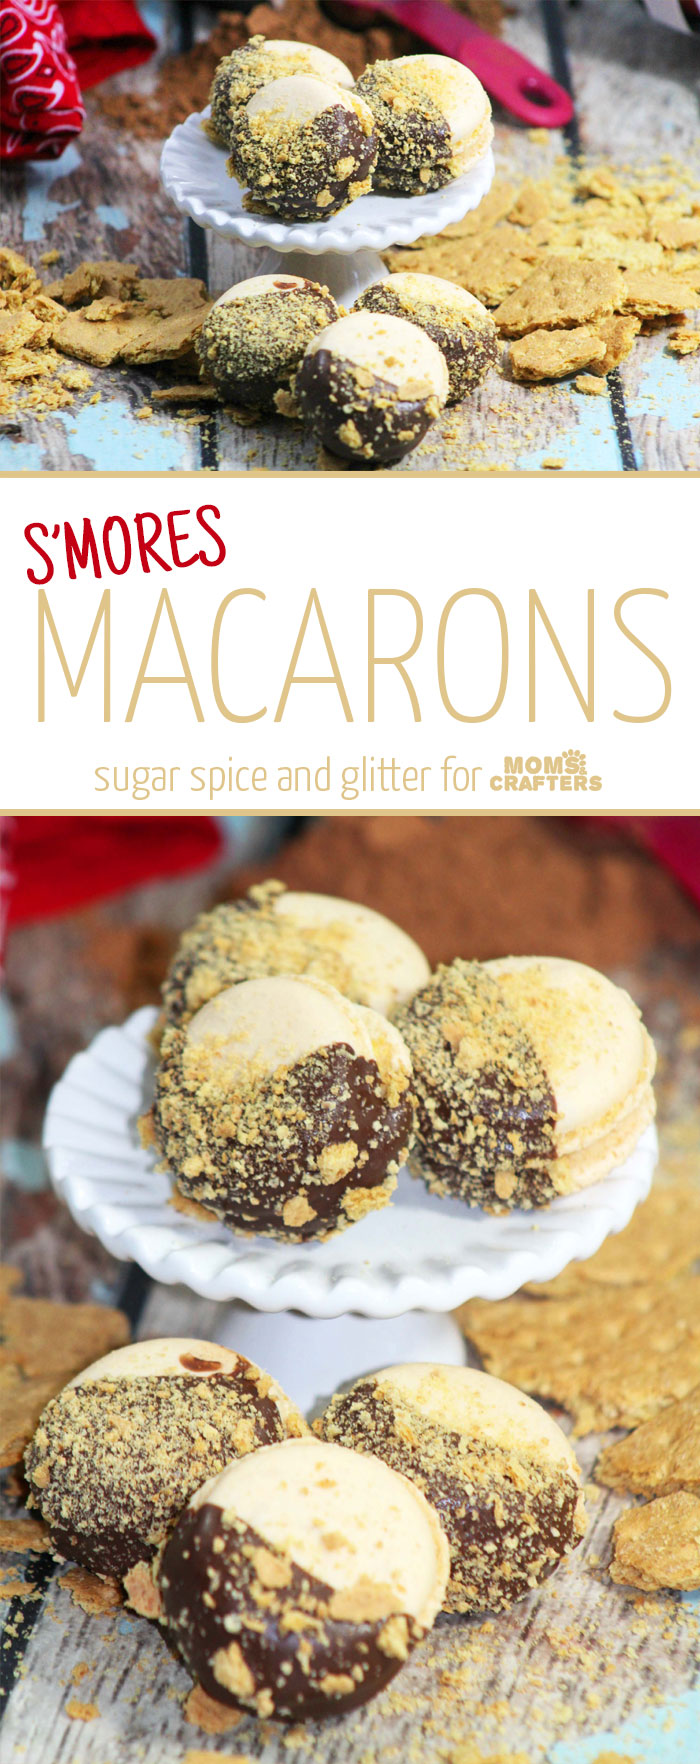 Make these delicious S'mores macarons - a showstopping dessert recipe perfect for parties and special occasions! It's mouth-watering and great food for entertaining.